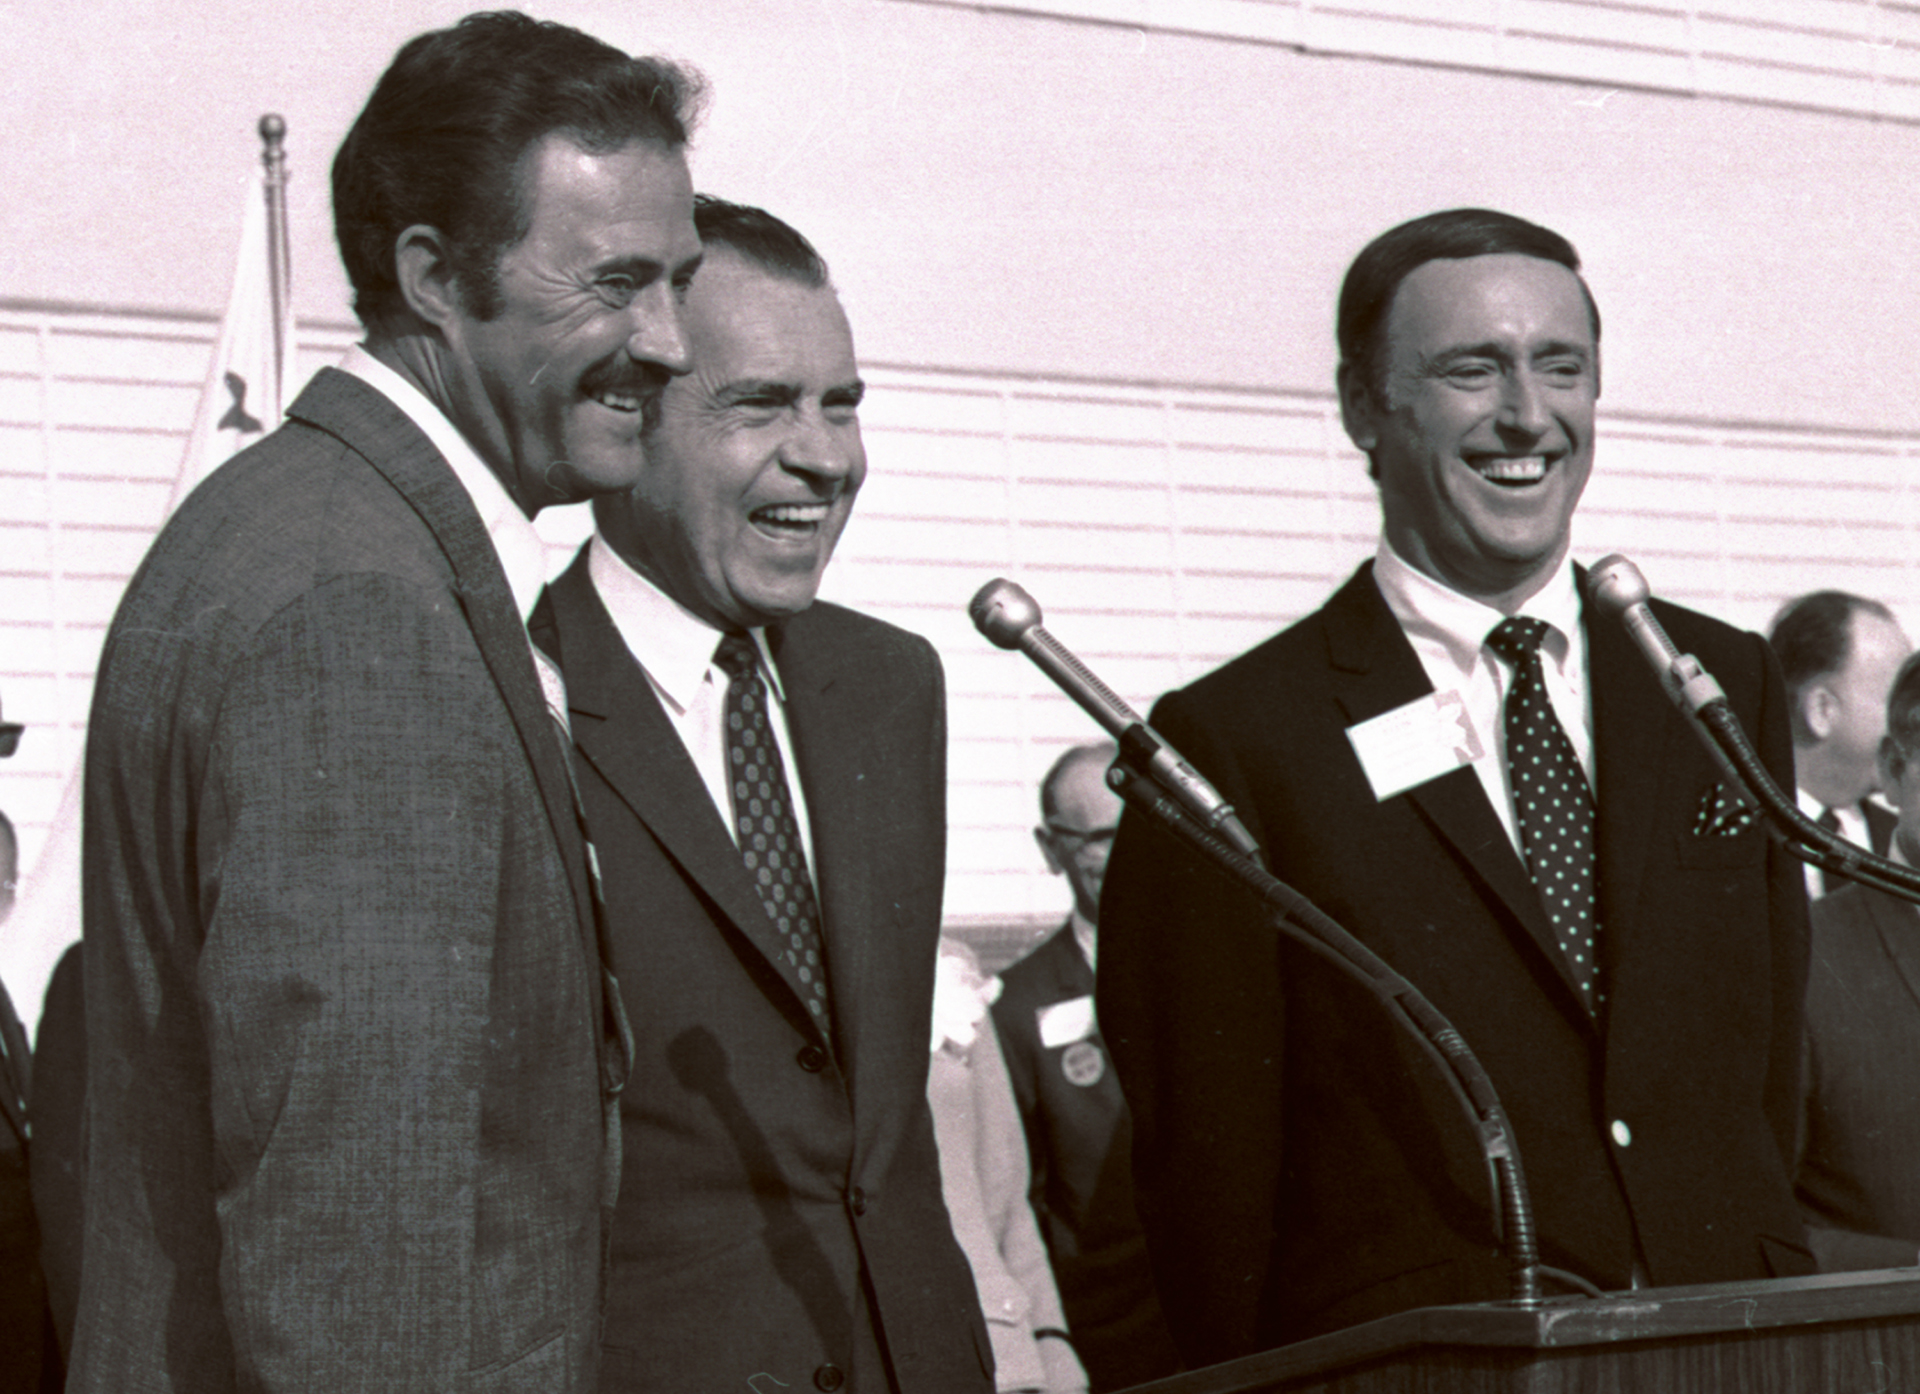 Comedians Dan Rowan, left, and Dick Martin, hosts of 'Rowan & Martin's Laugh-In' with then-Republican presidential candidate Richard Nixon during a rally in Burbank, California, October 1968. (Credit: AP Photo)